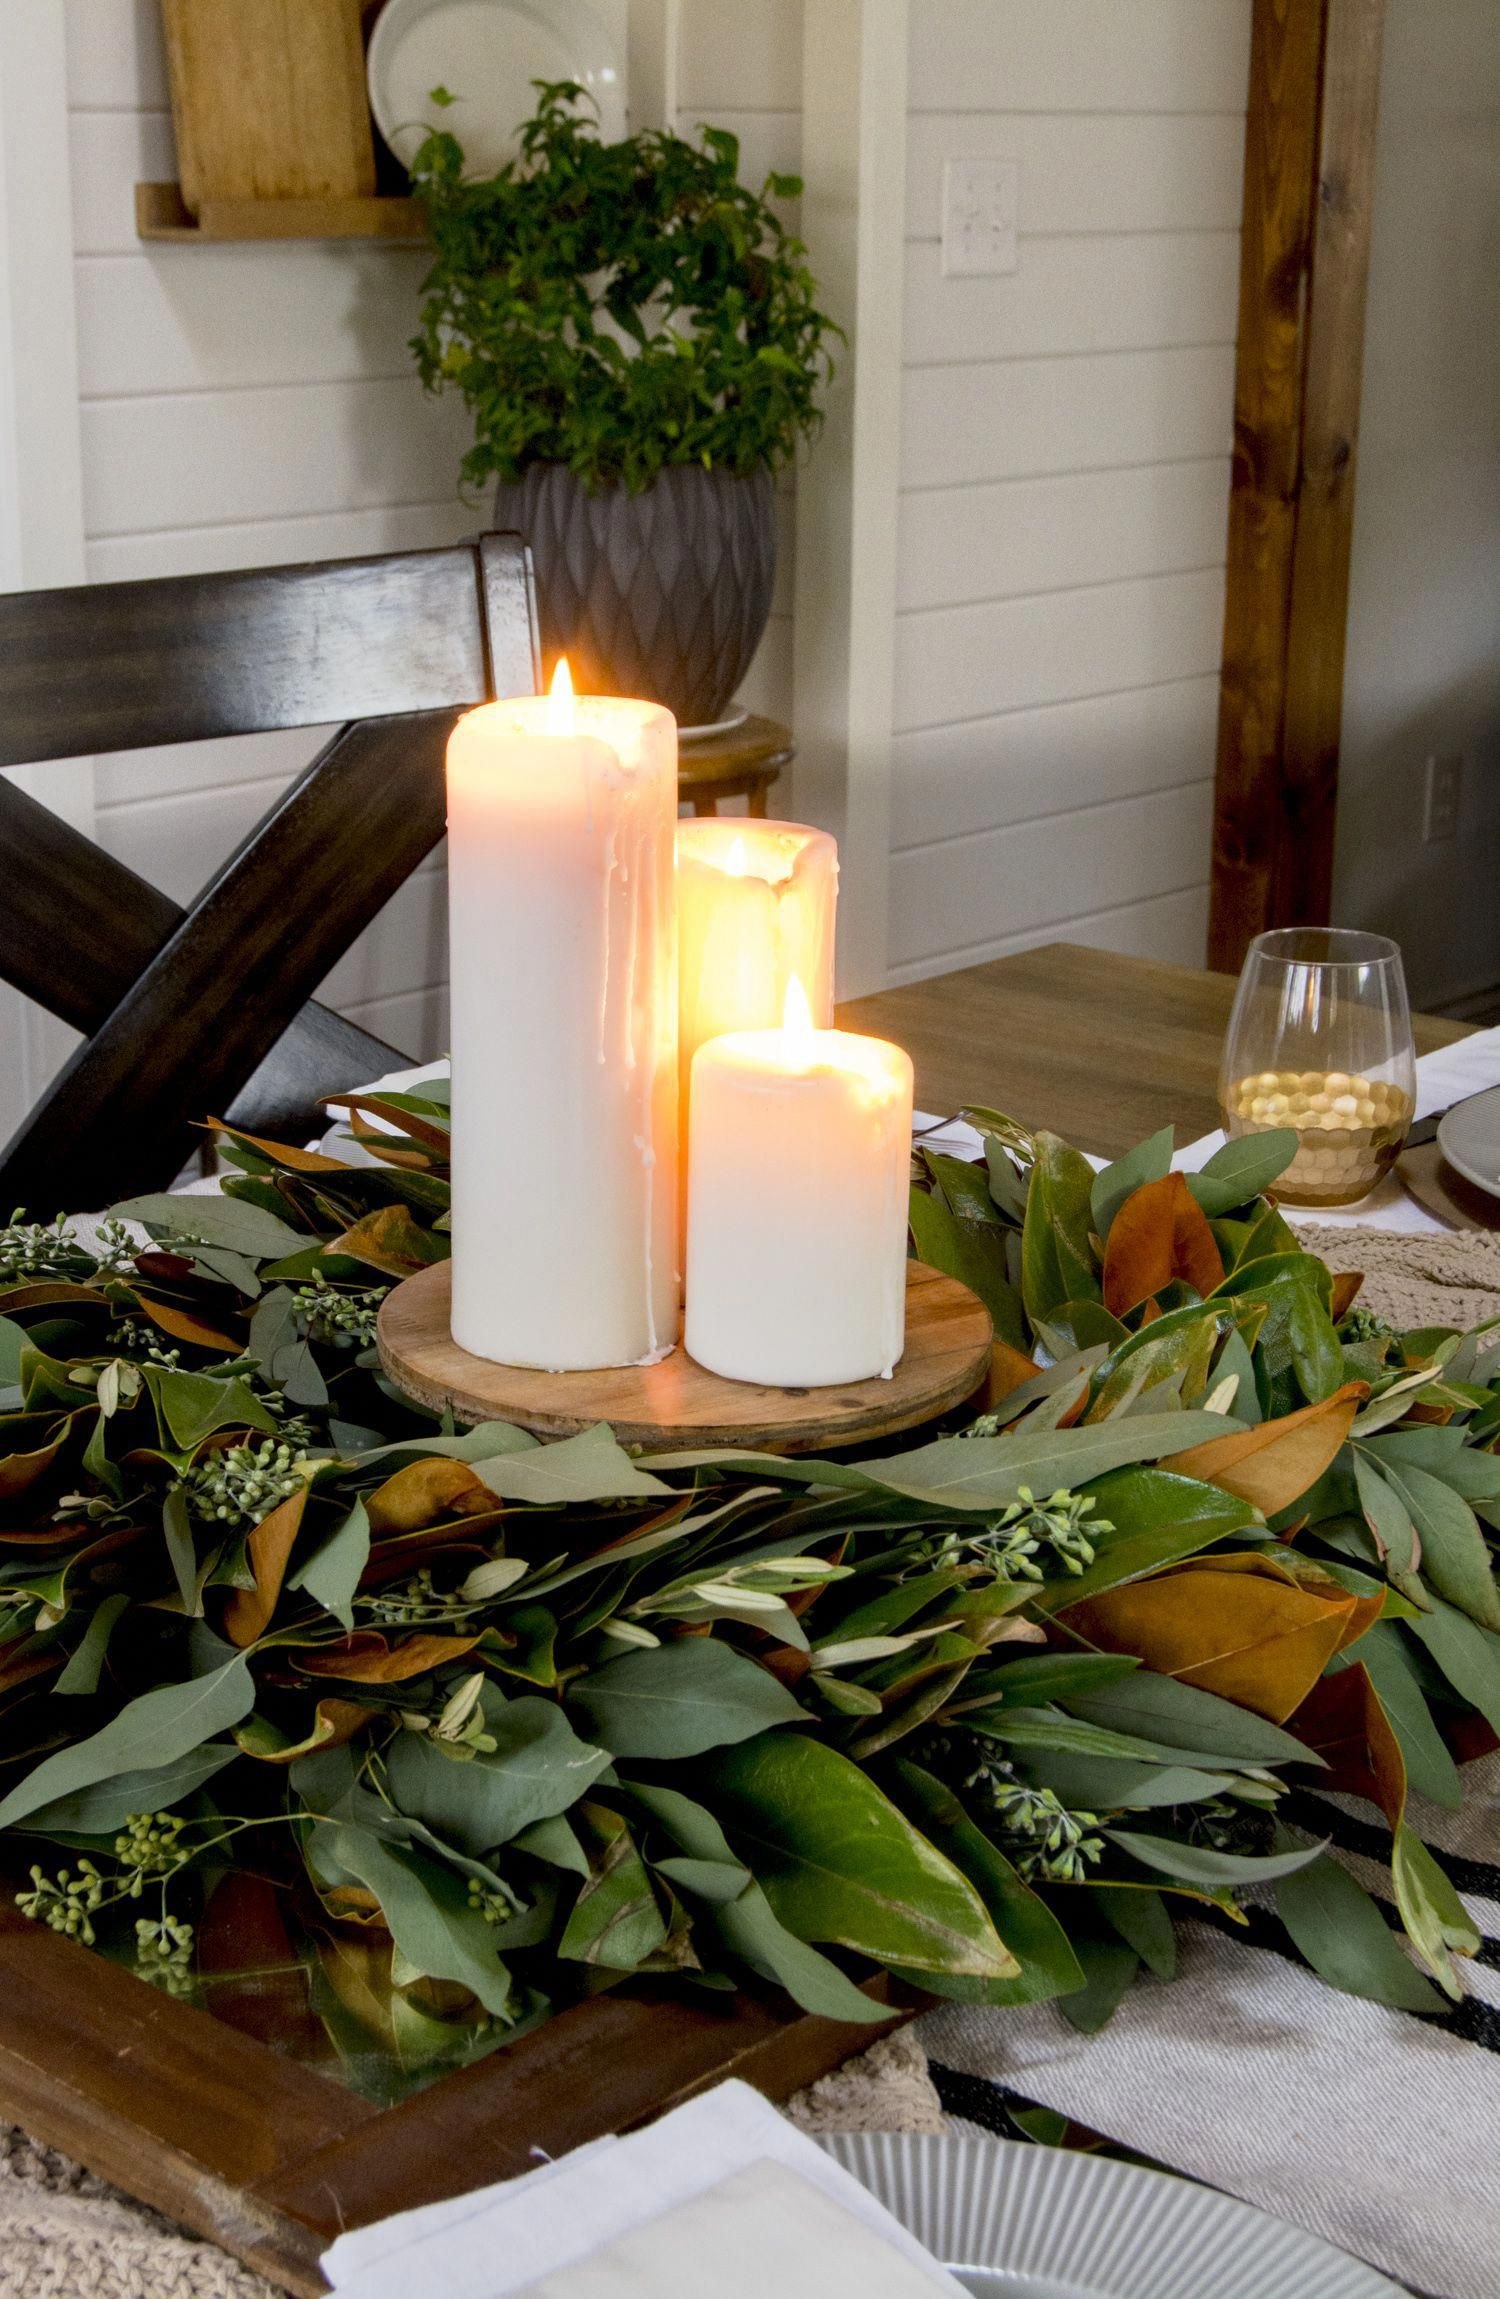 Are you looking for easy and inexpensive Thanksgiving centerpiece ideas? Here are 3 ways to use your existing fall decor as a centerpiece this Thanksgiving. #fromhousetohaven #falltabledecor #thanksgivingcenterpiece #thanksgivingdecor #fallhomedecor